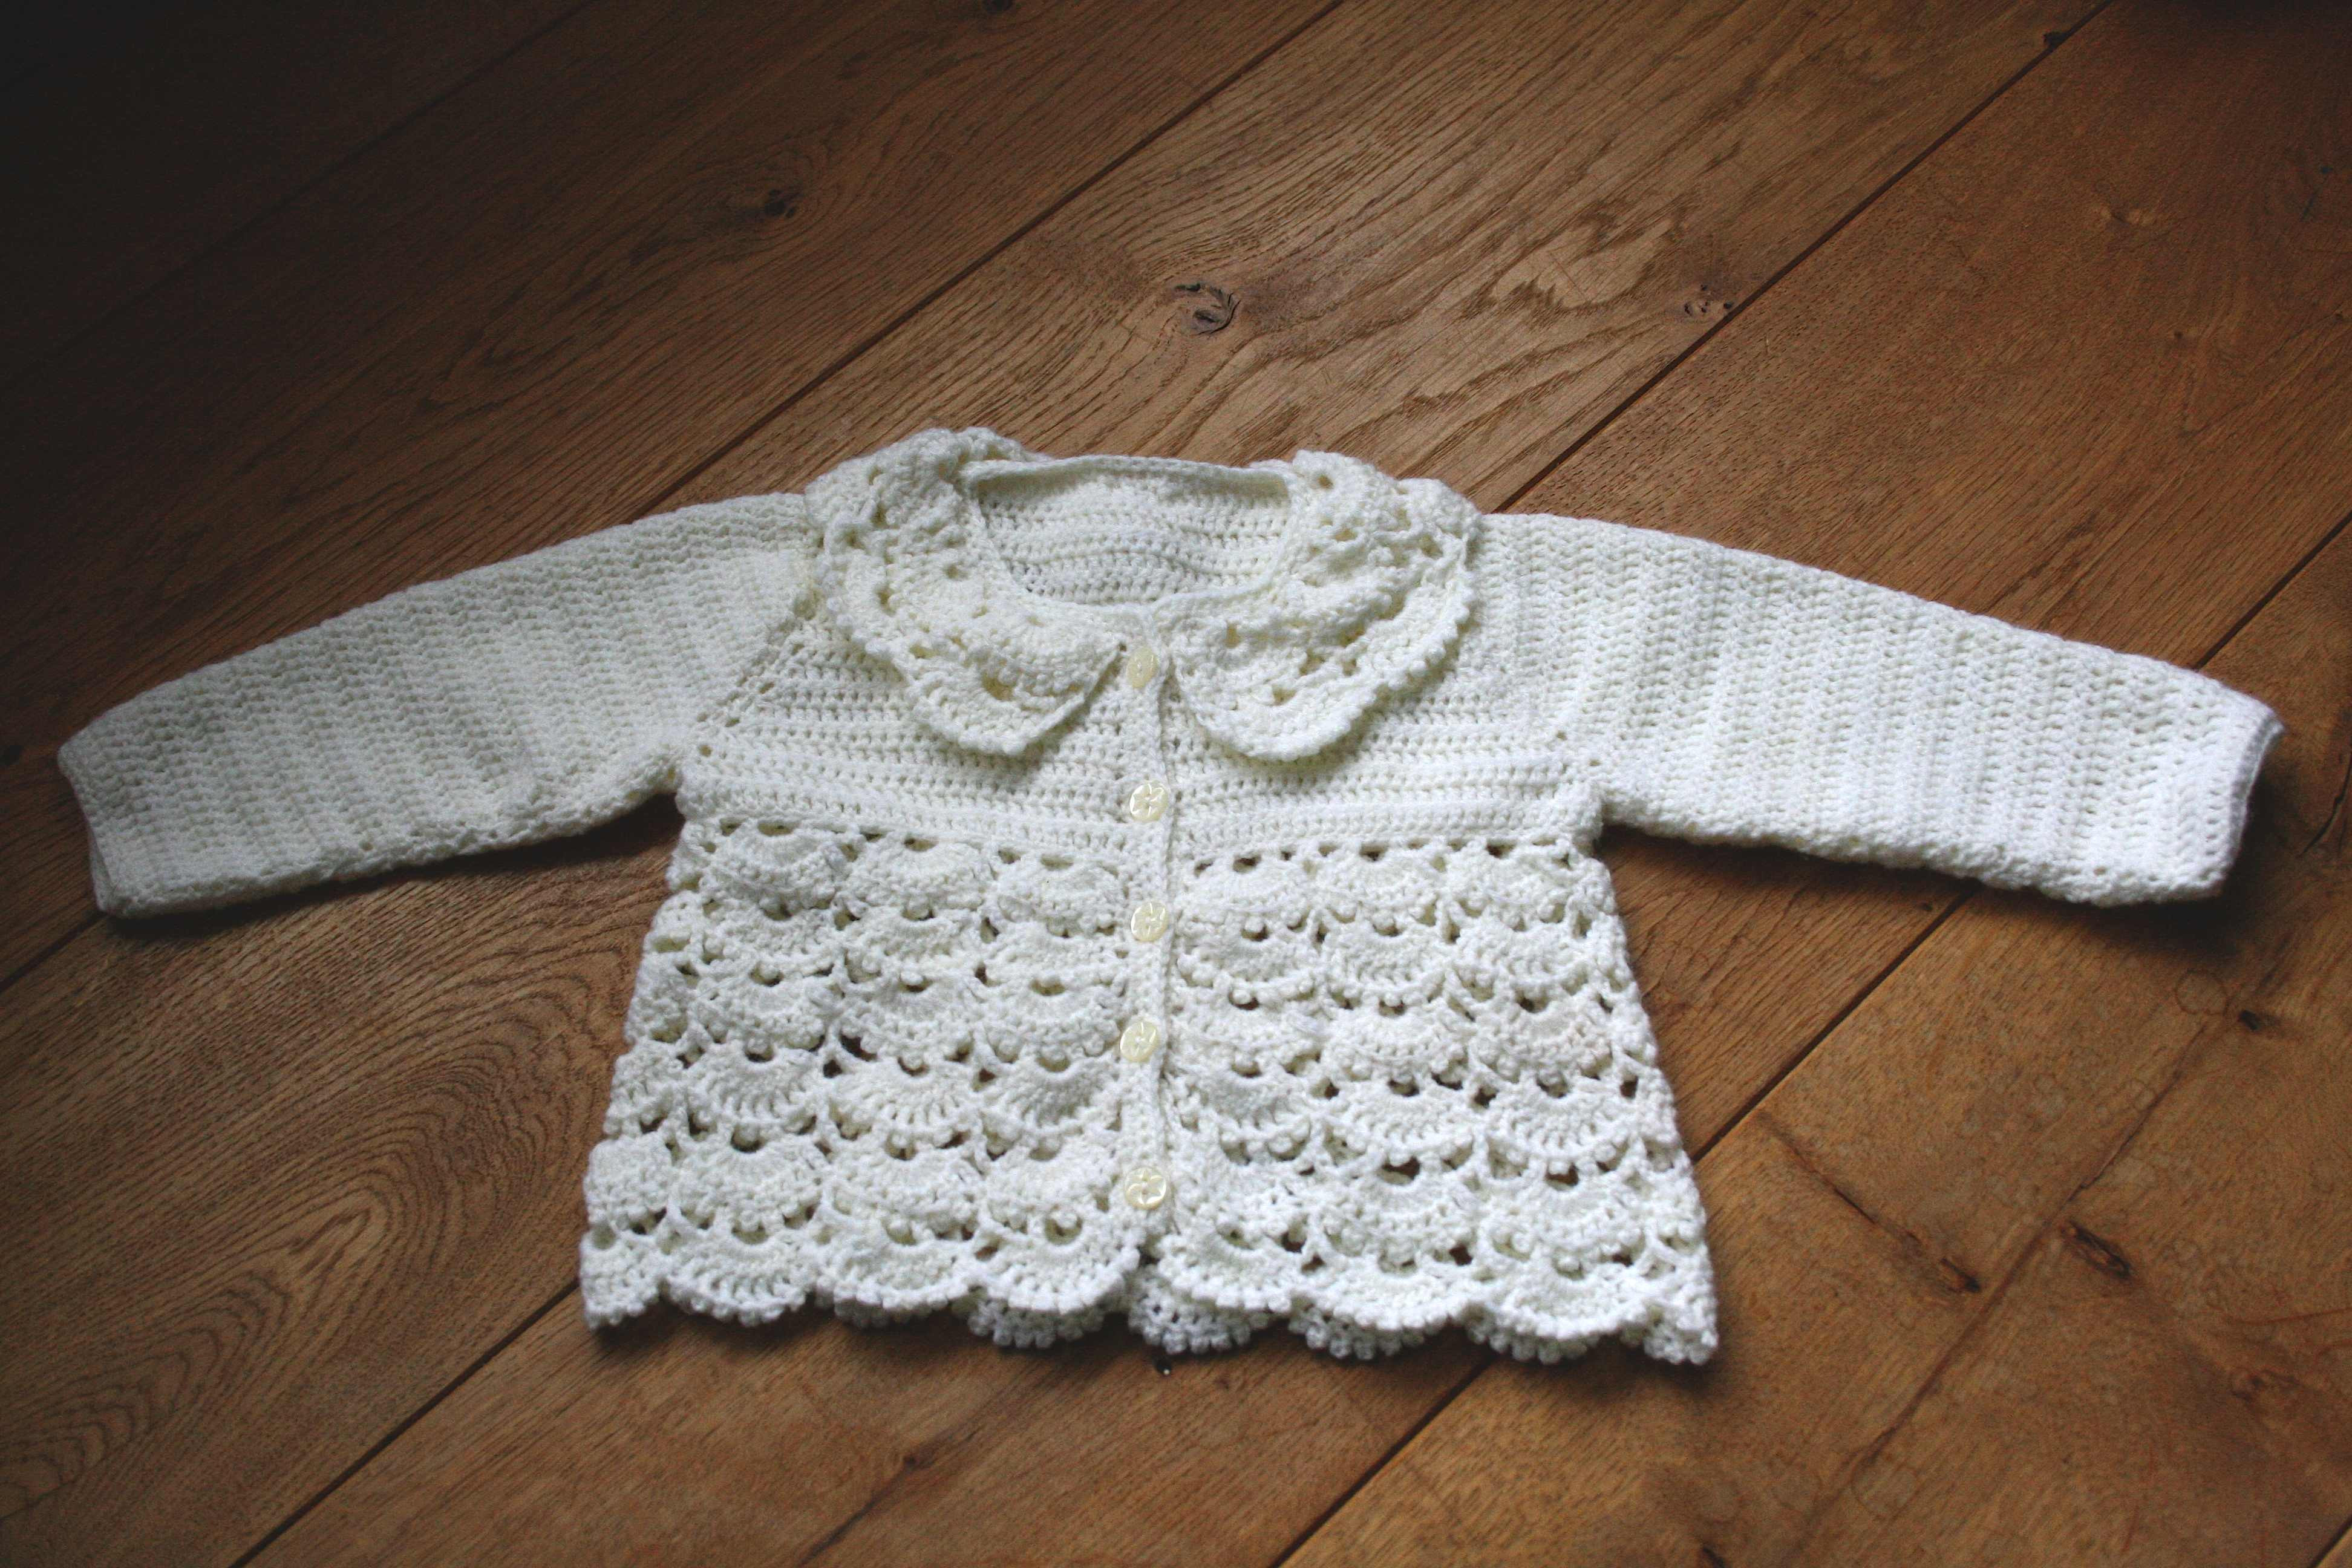 Beautiful Crocheted Lacy Baby Cardigan Free Crochet Baby Sweater Patterns Of Wonderful 40 Images Free Crochet Baby Sweater Patterns